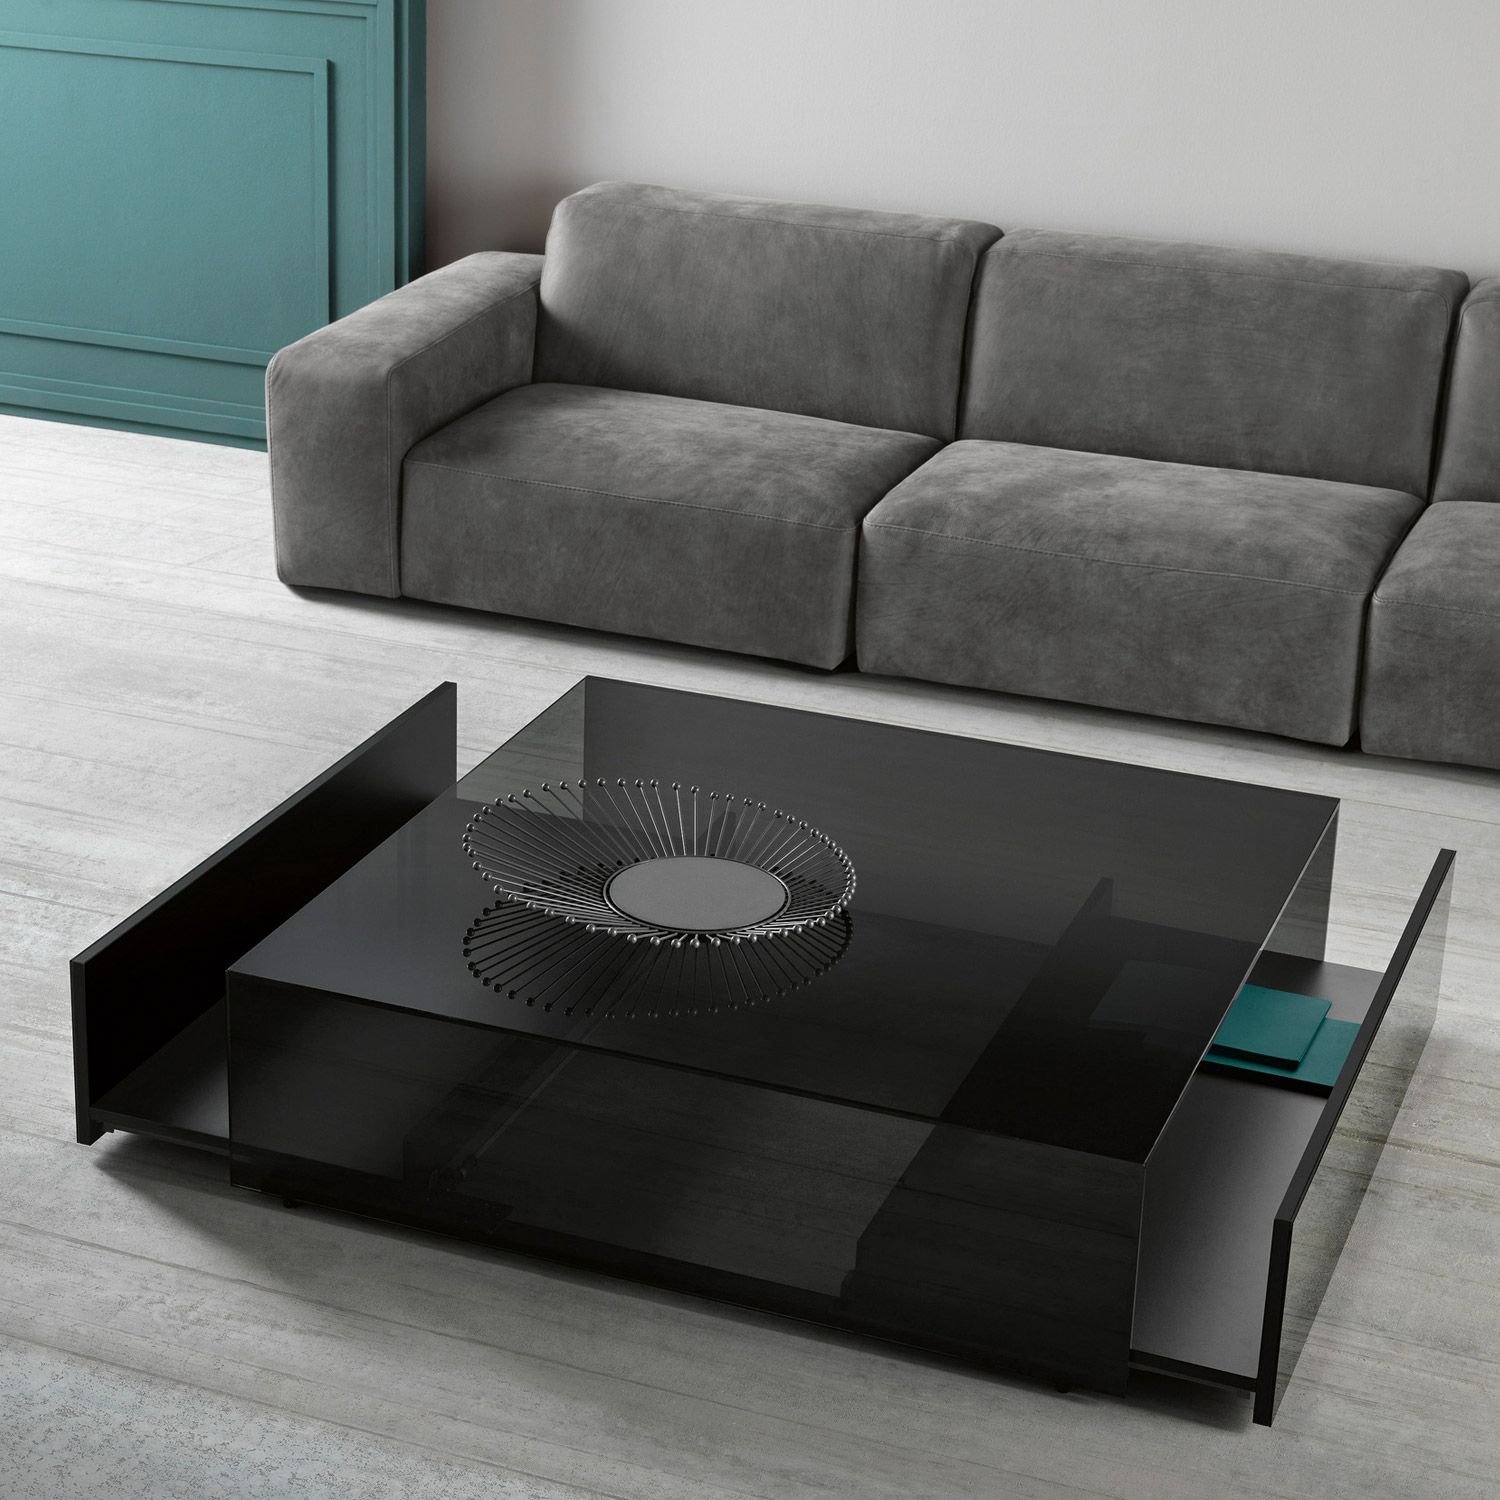 Low Black Table Ghotam Square Smoked Glass Coffee Table With 2 Drawers